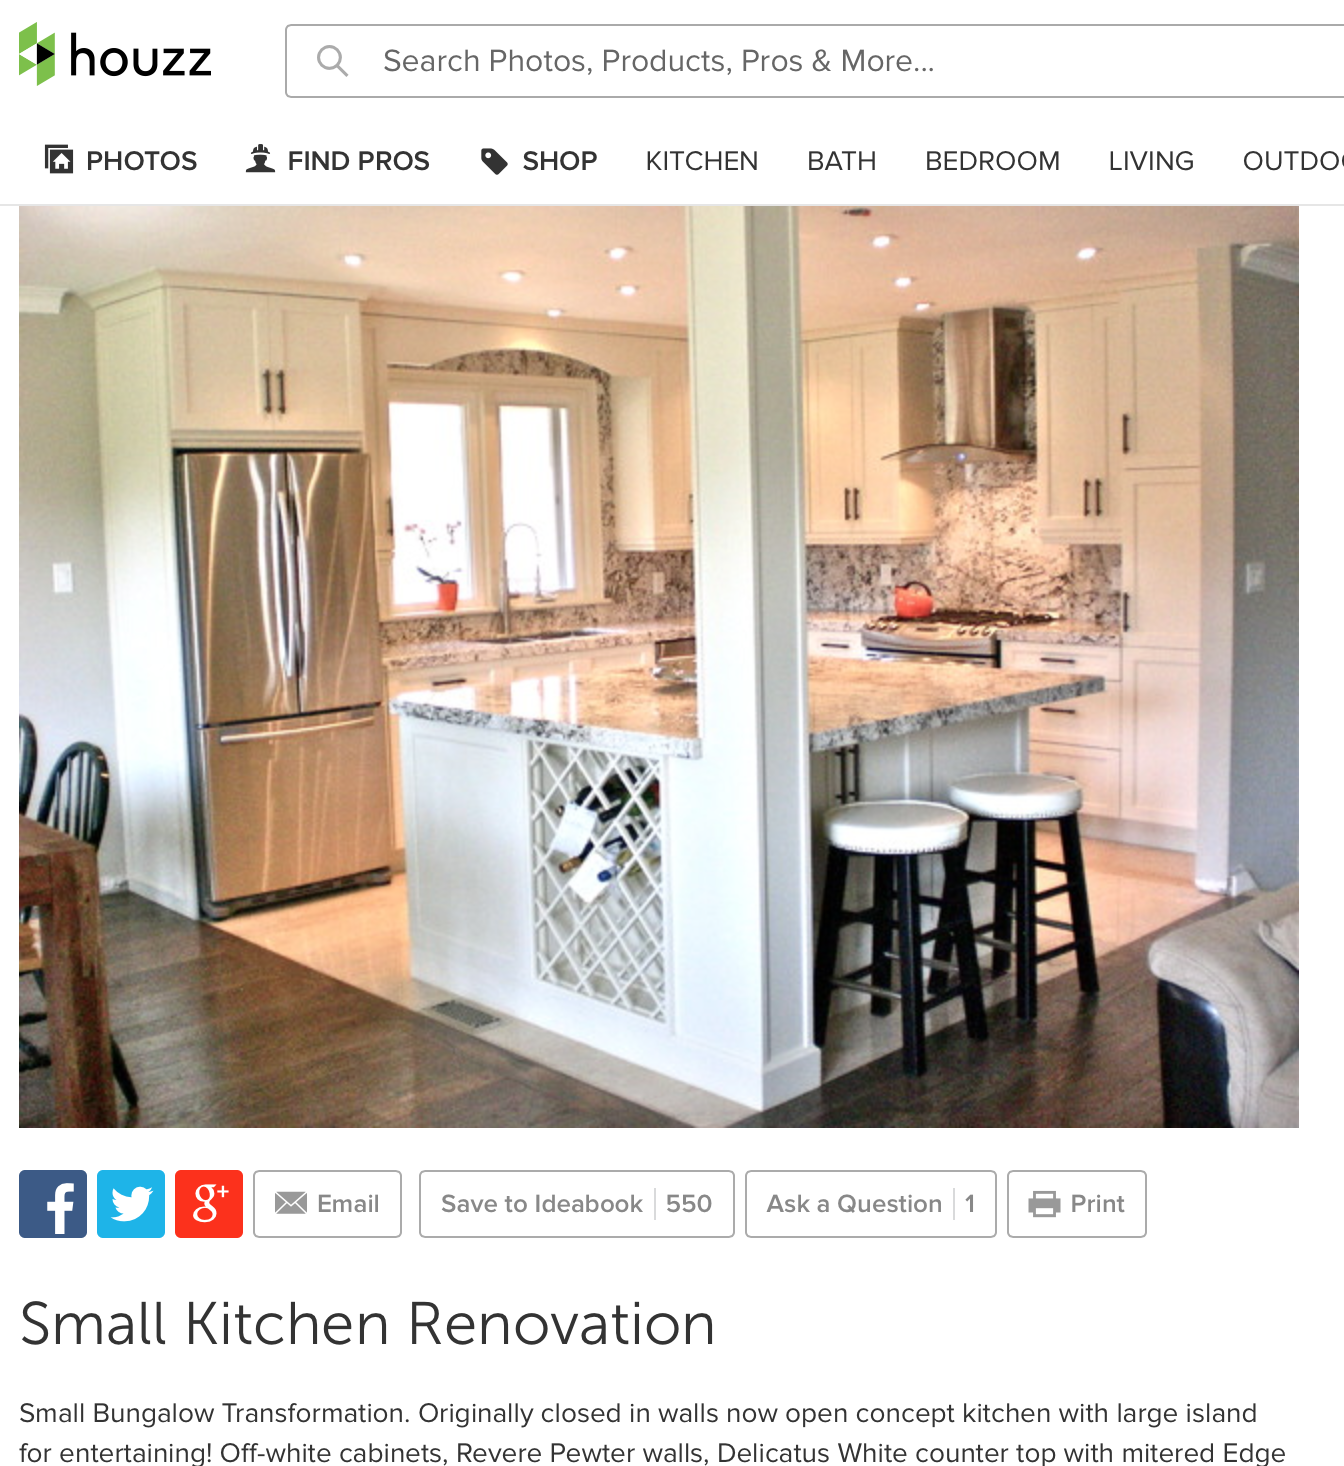 Kitchen Remodel With Open Concept Family Room: This Is IT!!! The Small Kitchen Reno I Have Been Looking